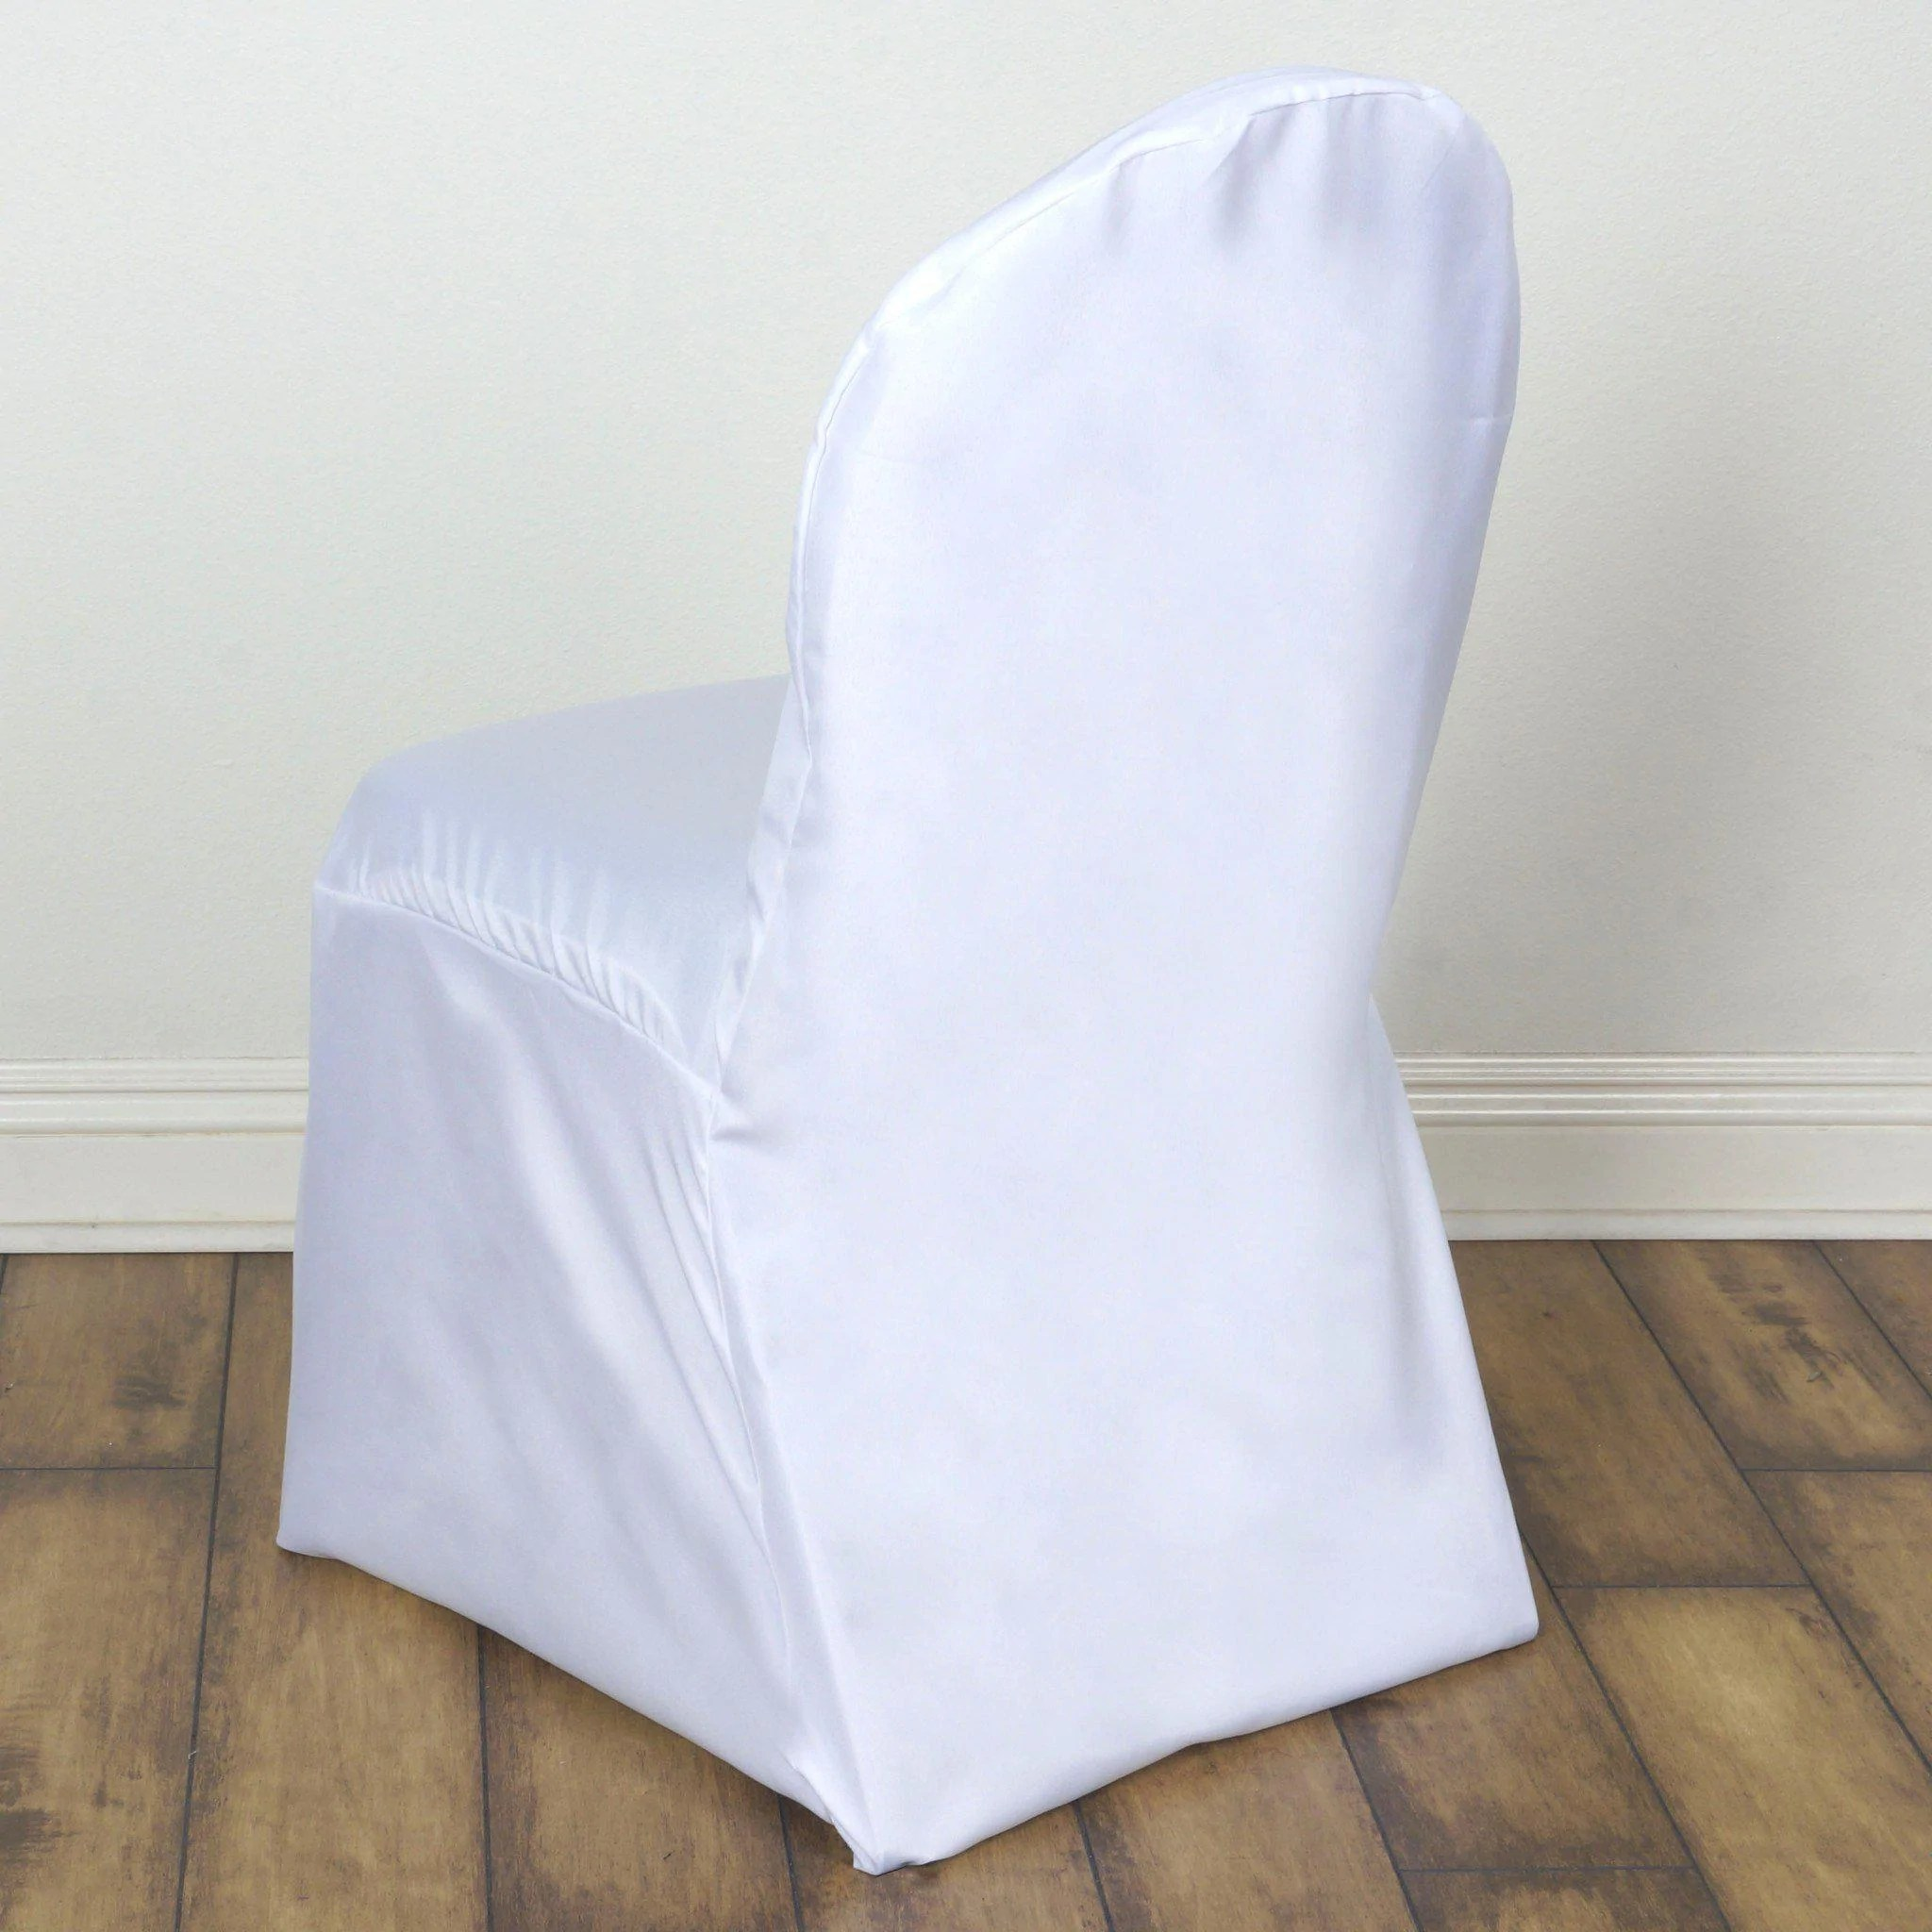 Used Banquet Chairs White Polyester Banquet Chair Covers Tablecloths Factory